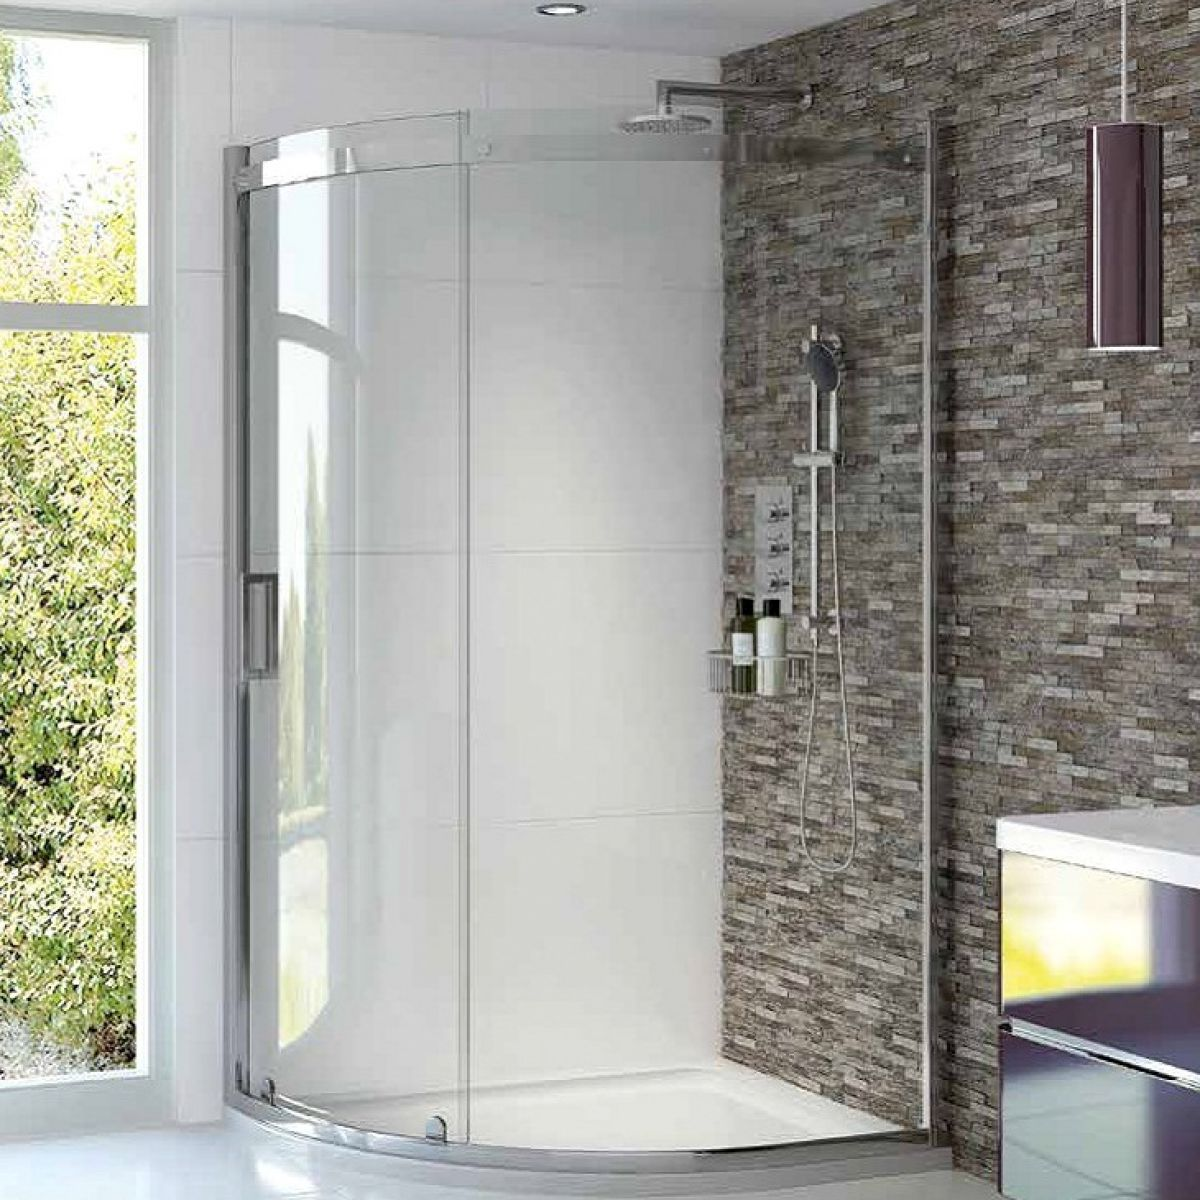 picture of a quadrant shower enclosure